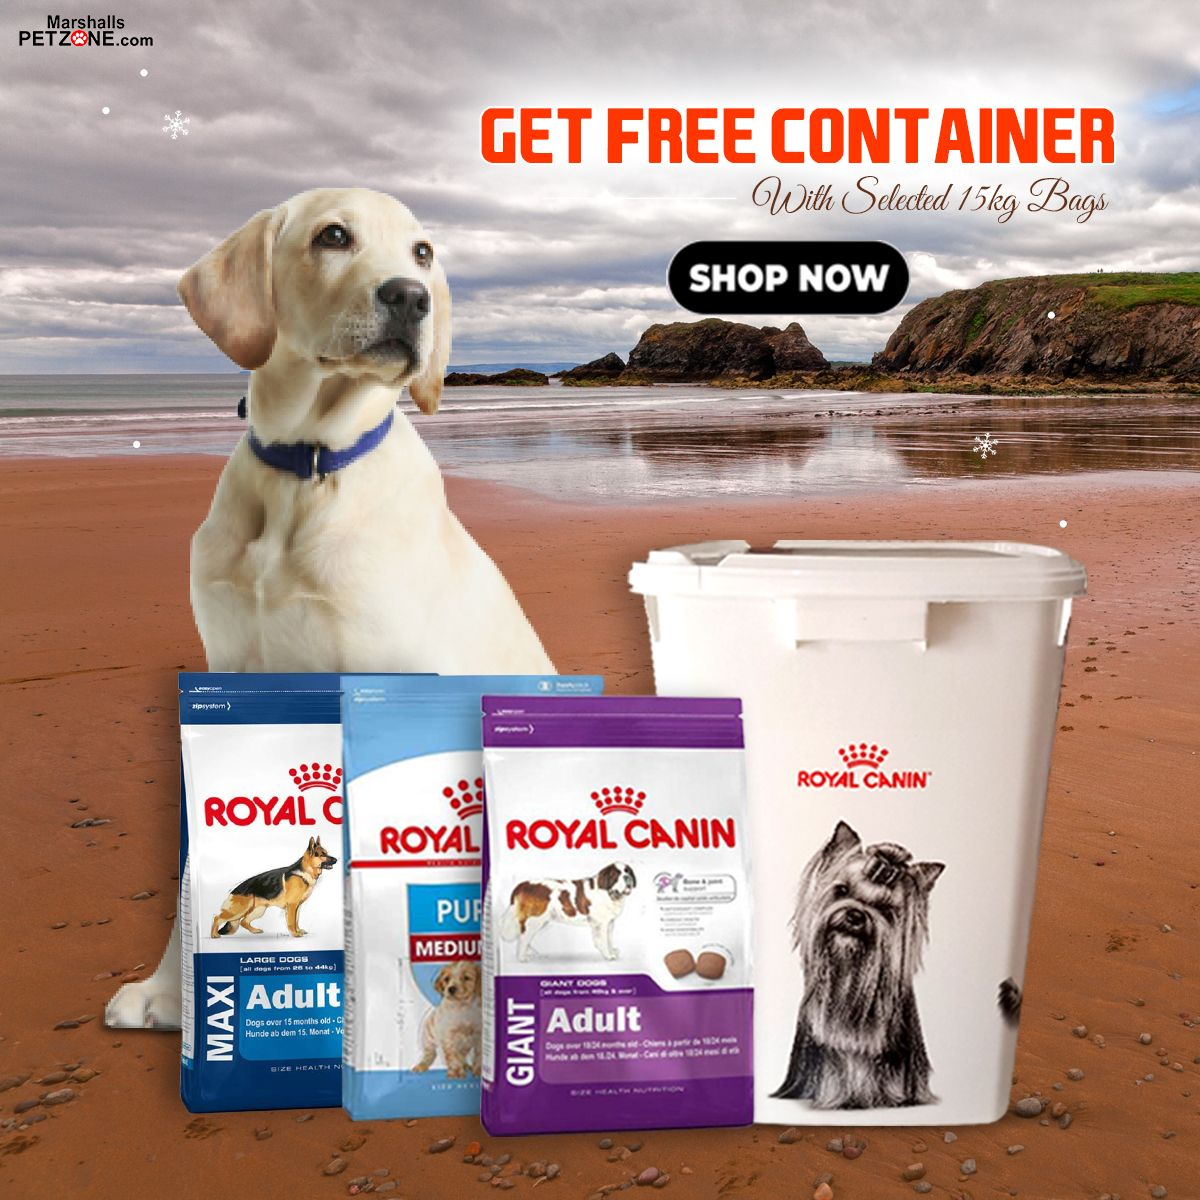 Royal Canin Giant Adult 15kg Best Dry Dog Food Dog Food Online